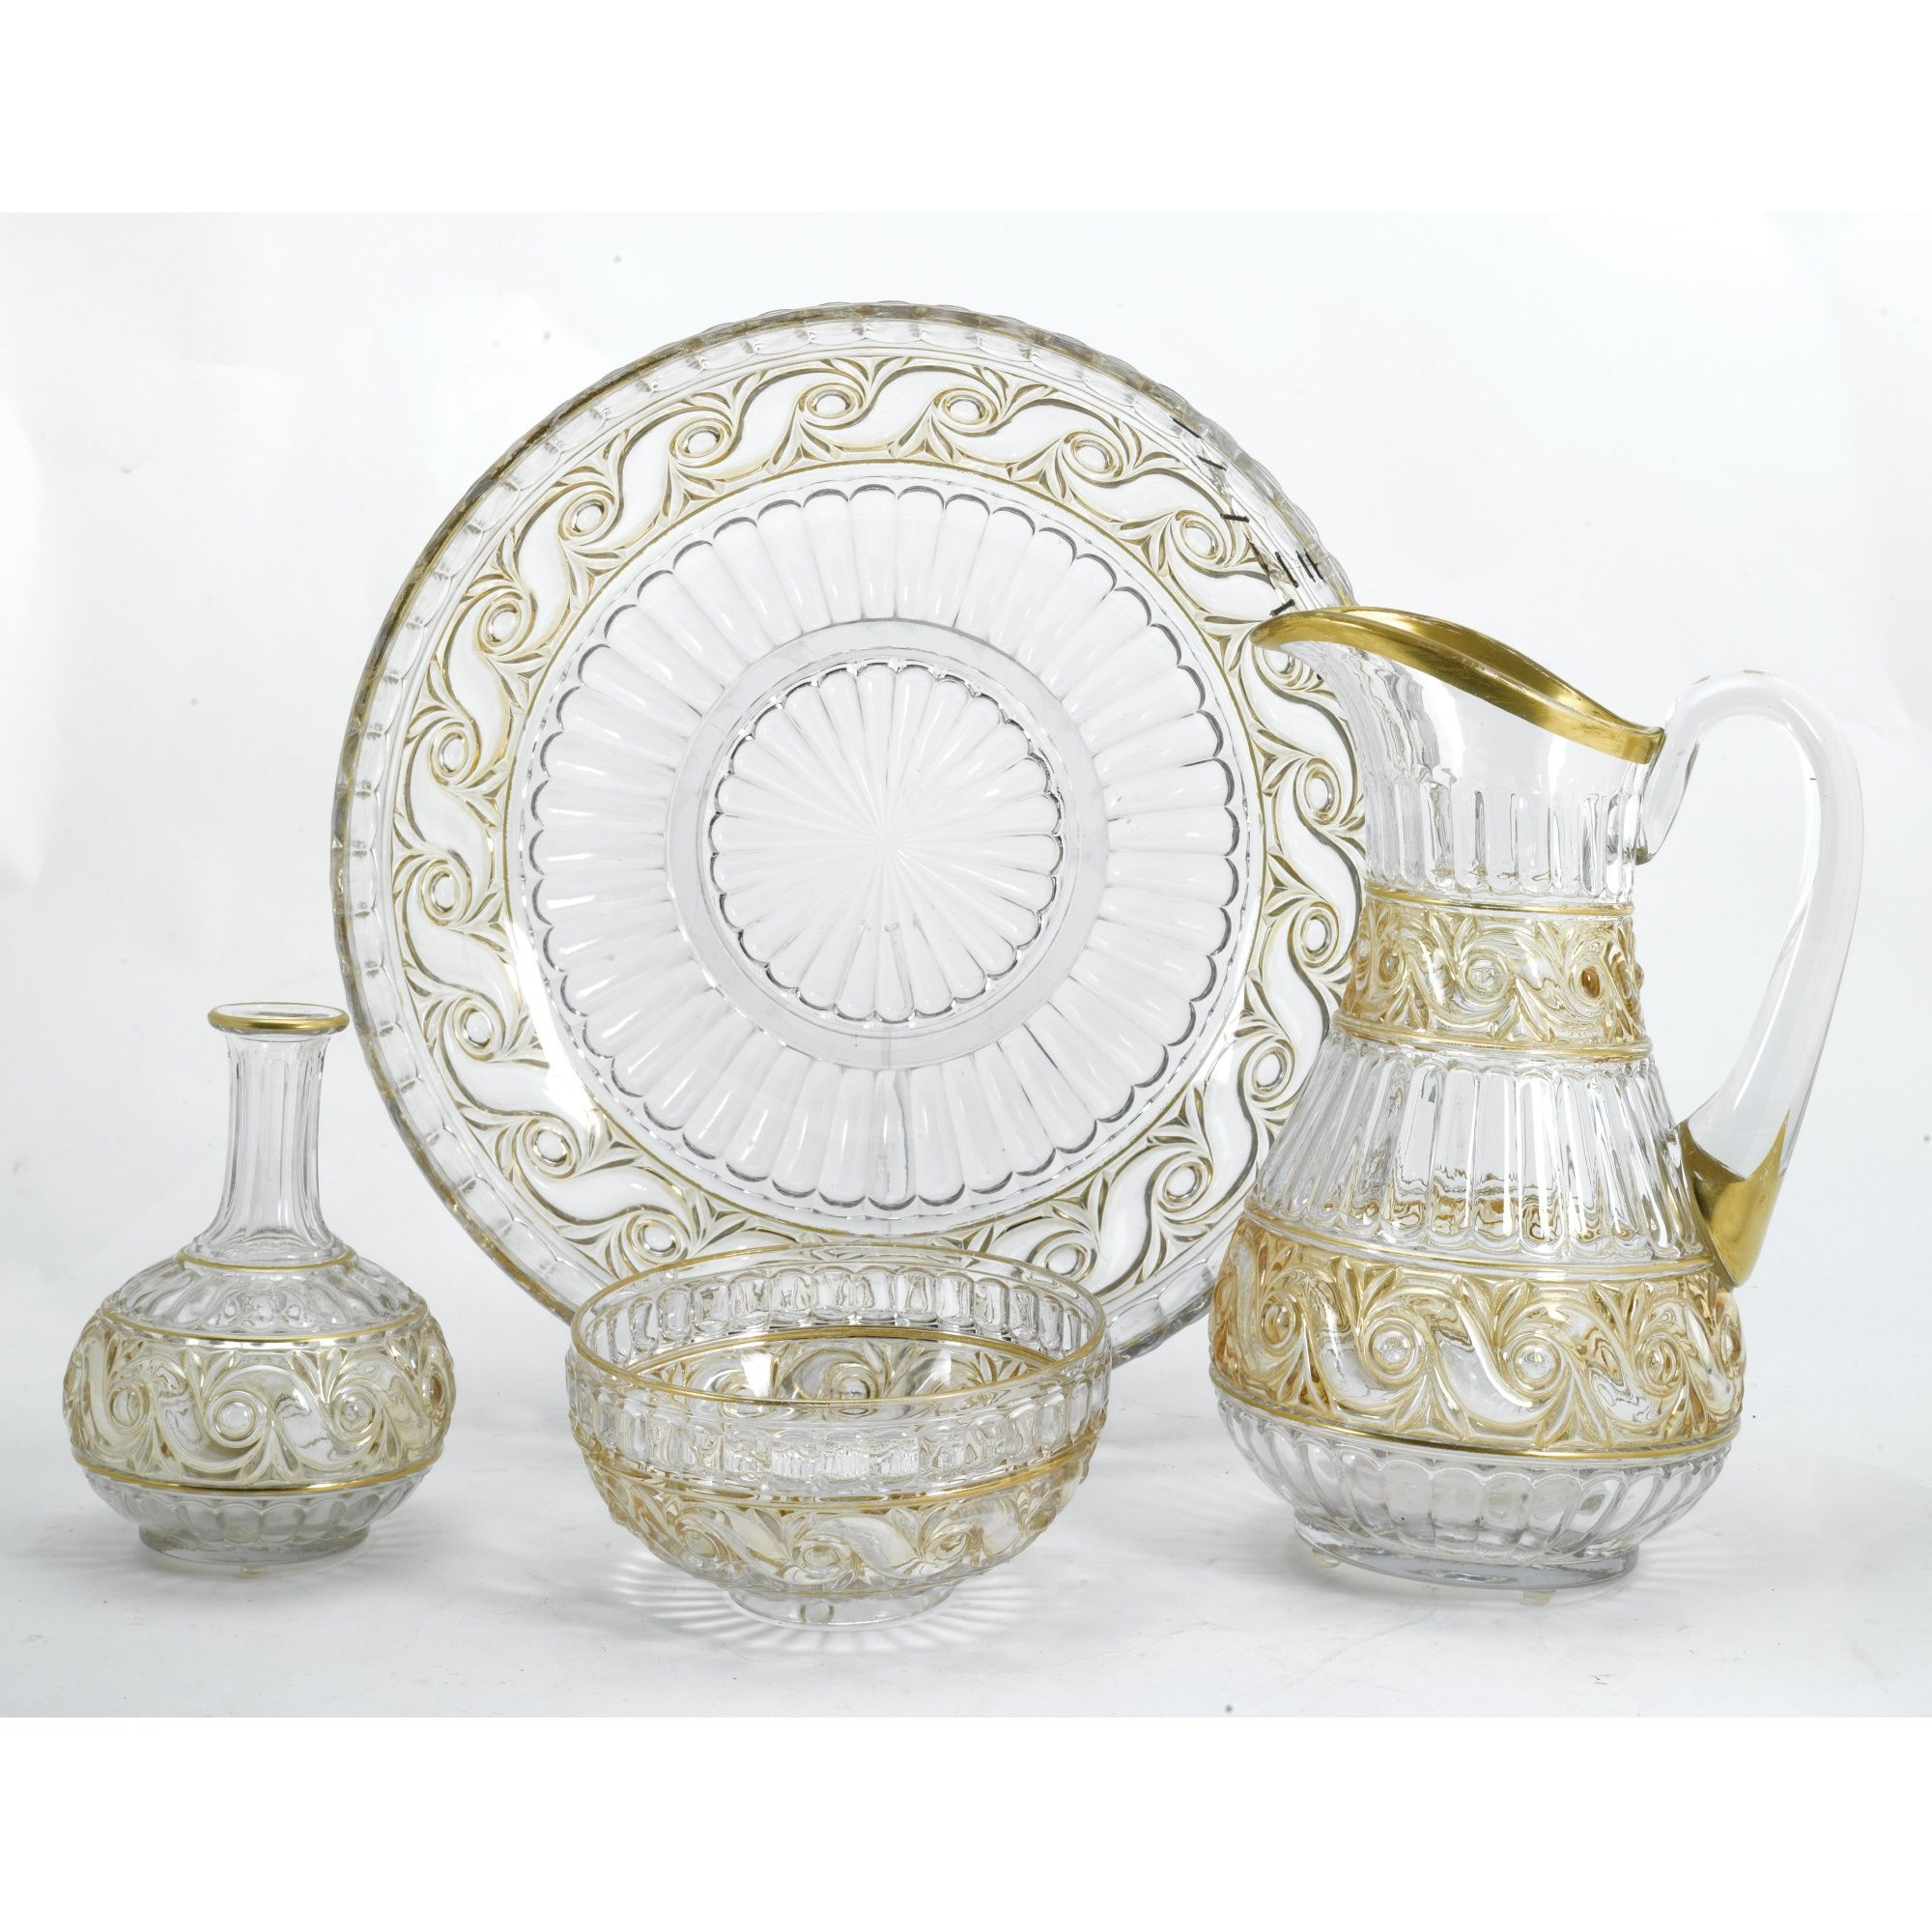 A group of Baccarat glass wares late 19th Century